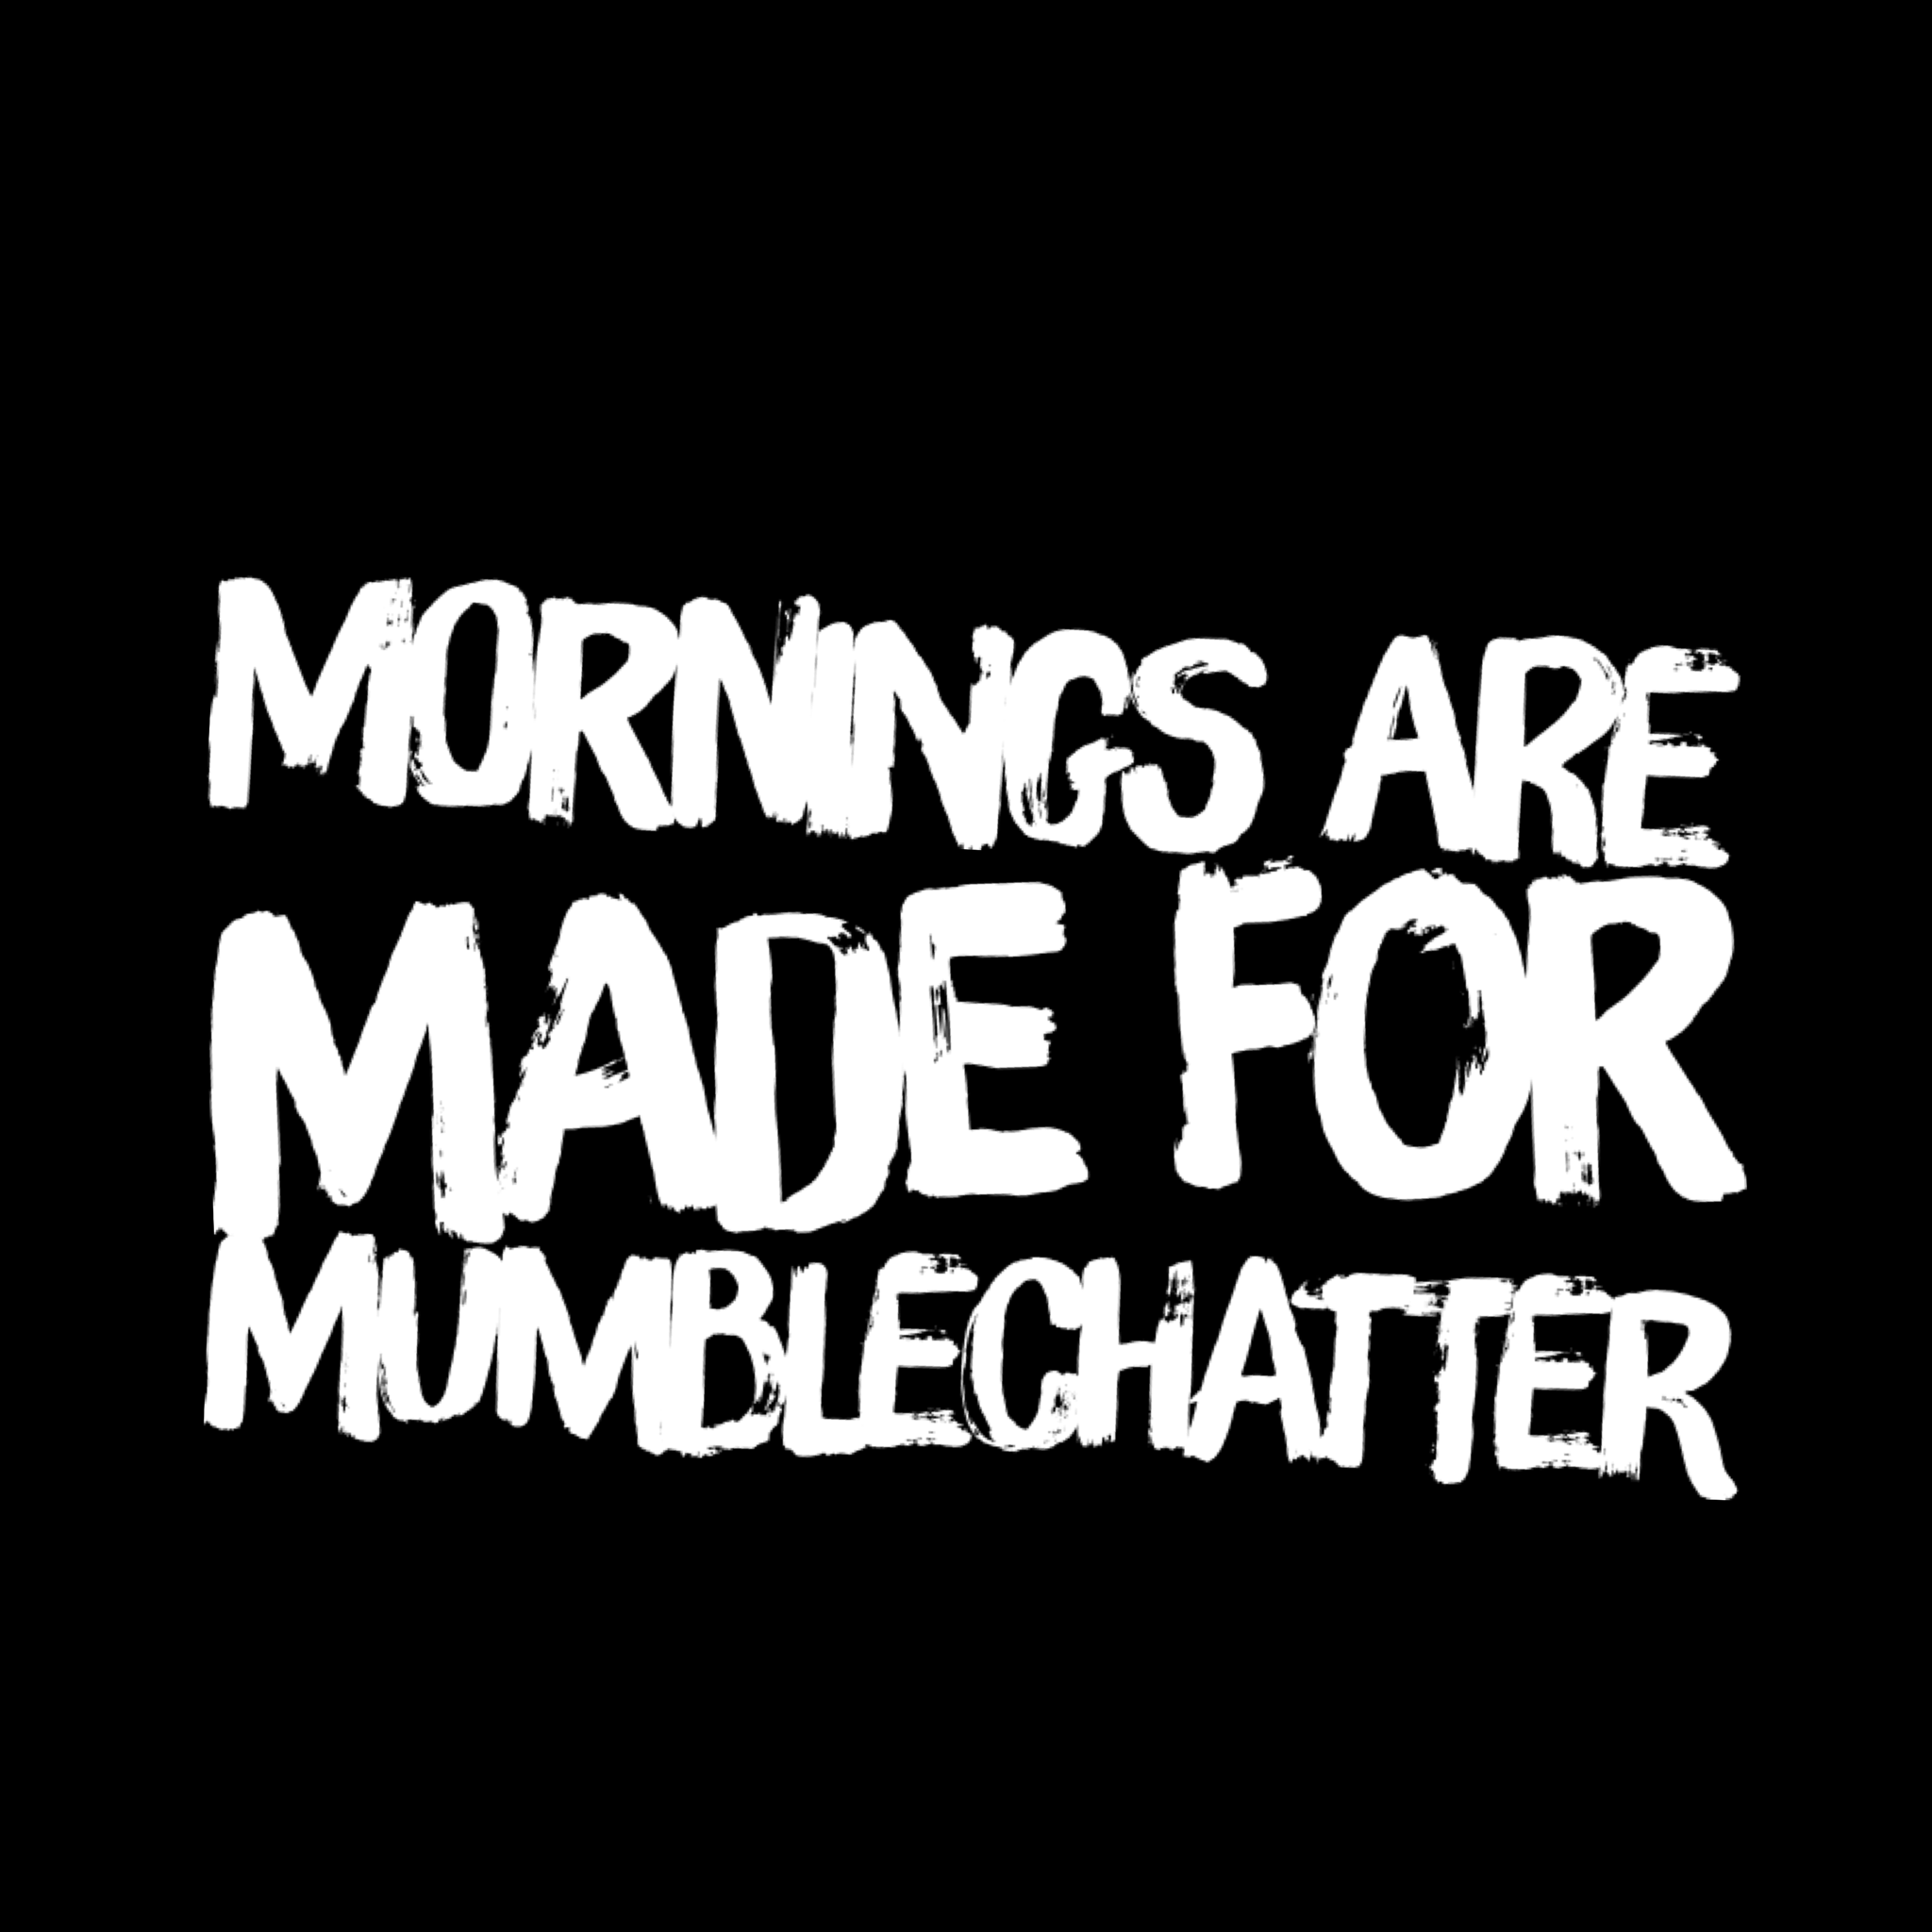 Mornings are Made for Mumblechatter